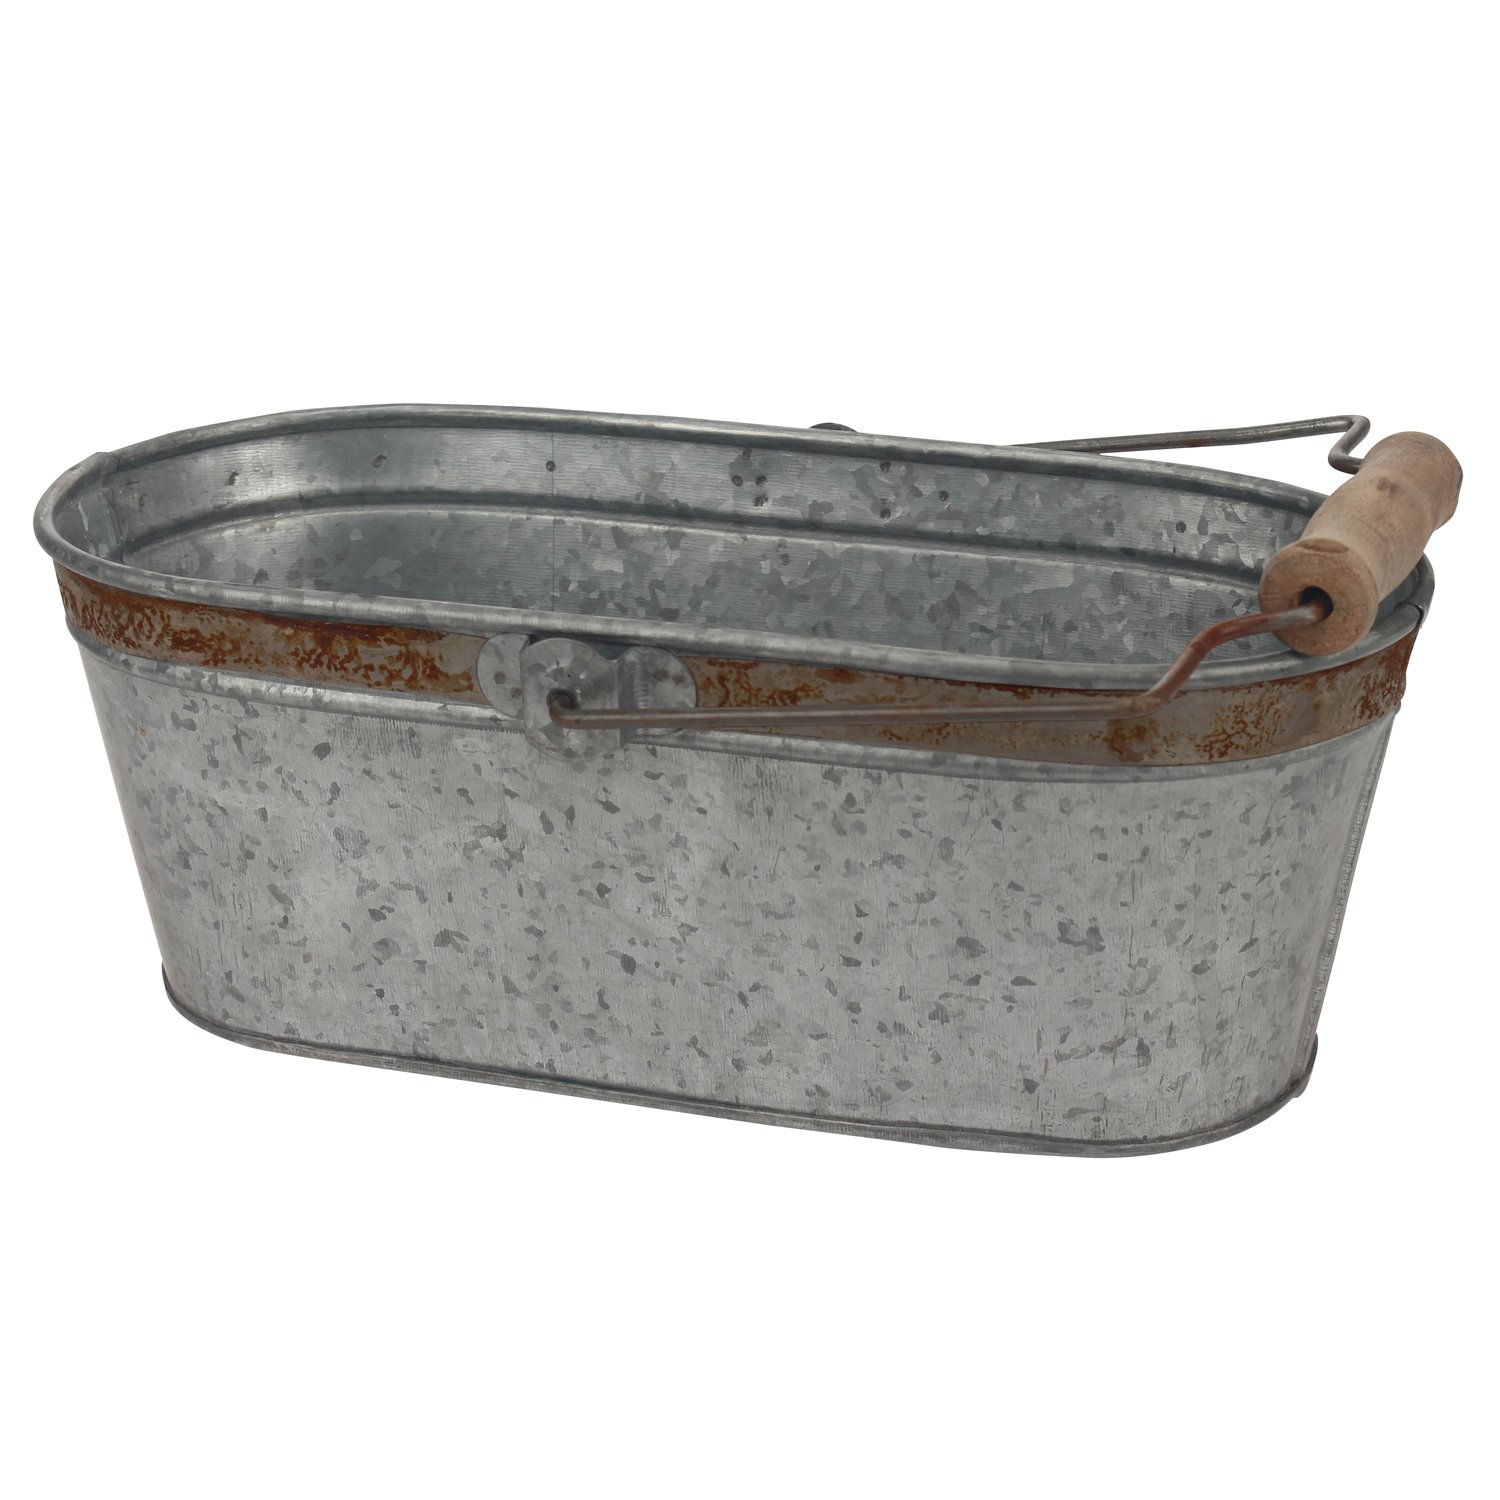 Stonebriar Small Aged Galvanized Metal Oval Bucket with Rust Trim and Wooden Handle, Country Rustic Home Decor, For Centerpiece, Office Organization, Bathroom Storage, or Party Decorations by Stonebriar